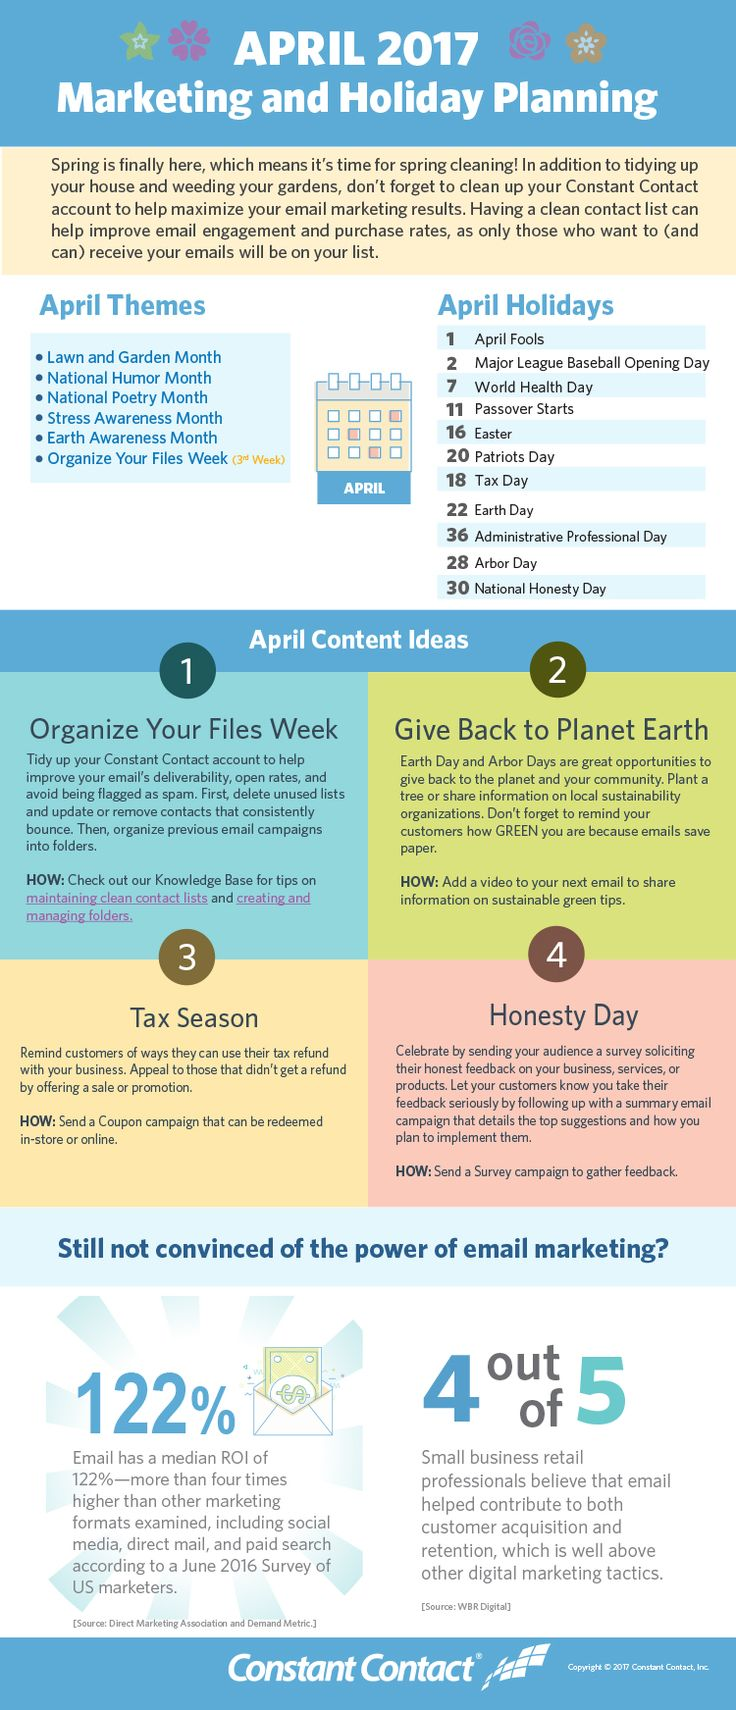 This April, spend some time making sure your email list is spick and span and your email marketing is on the right track.  Make this the month you finally clean out any emails that consistently bounce. Then, send a survey to your subscribers to make sure you're sending what they're looking for.  Use the infographic below to come up with content ideas this month.